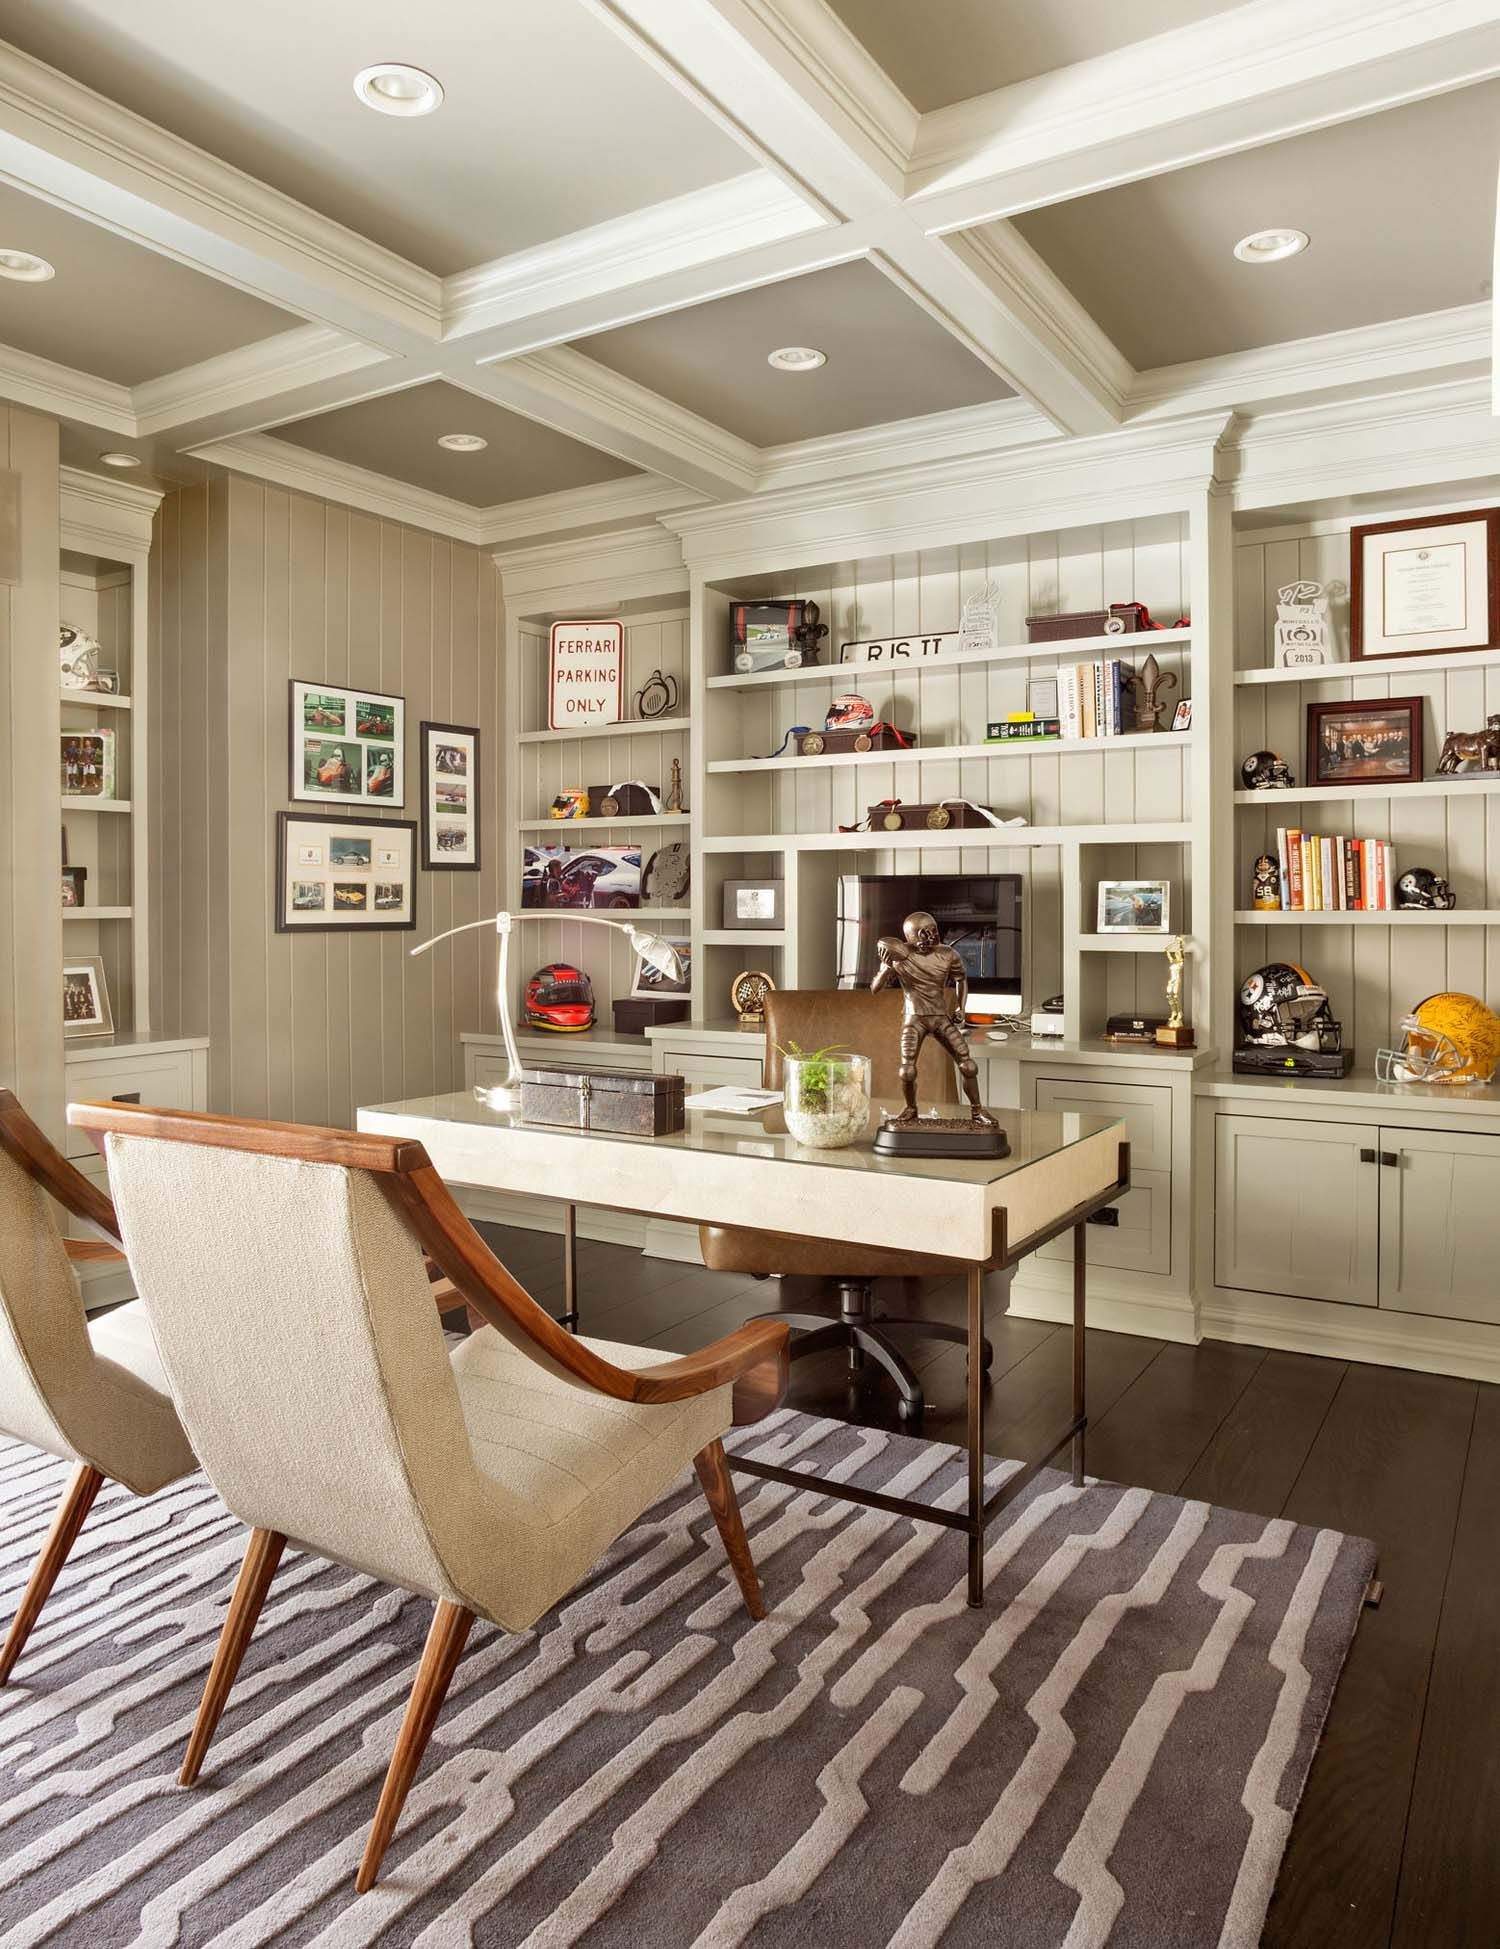 Sumptuous Colonial Home With Traditional Details In New Cannan House And Home Magazine Home Office Design Office Interior Design